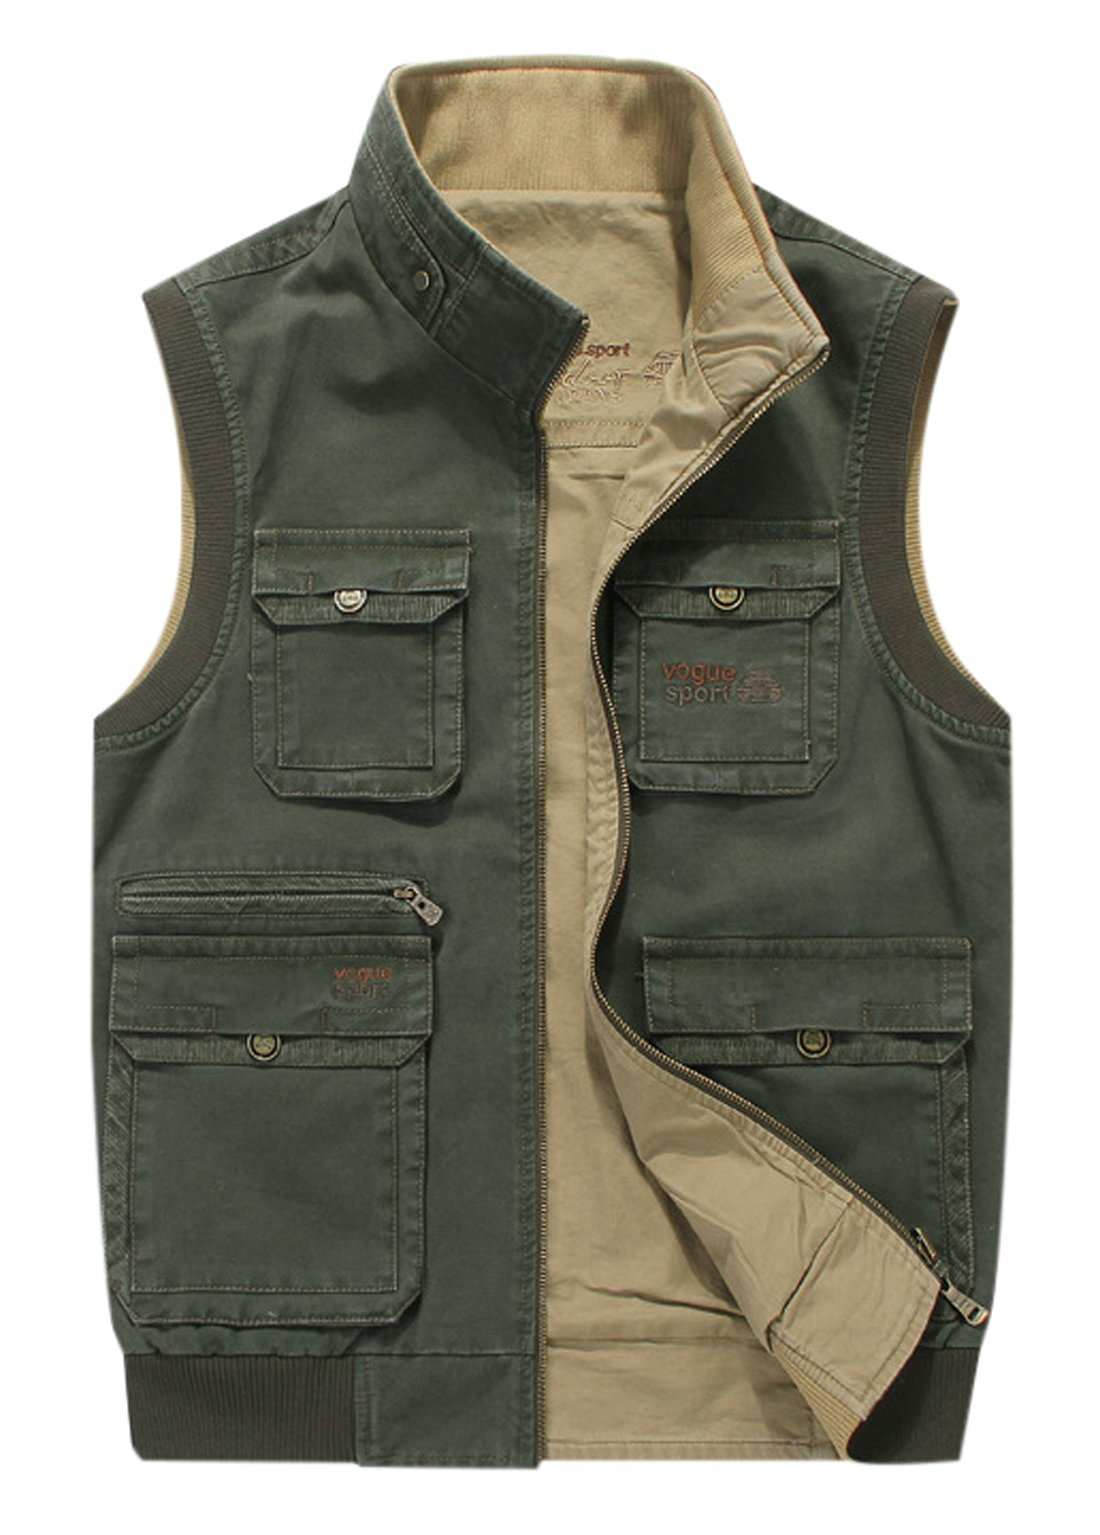 Gihuo Men's Reversible Cotton Leisure Outdoor Pockets Fish Photo Journalist Vest (XXX-Large, Army Green) by Gihuo